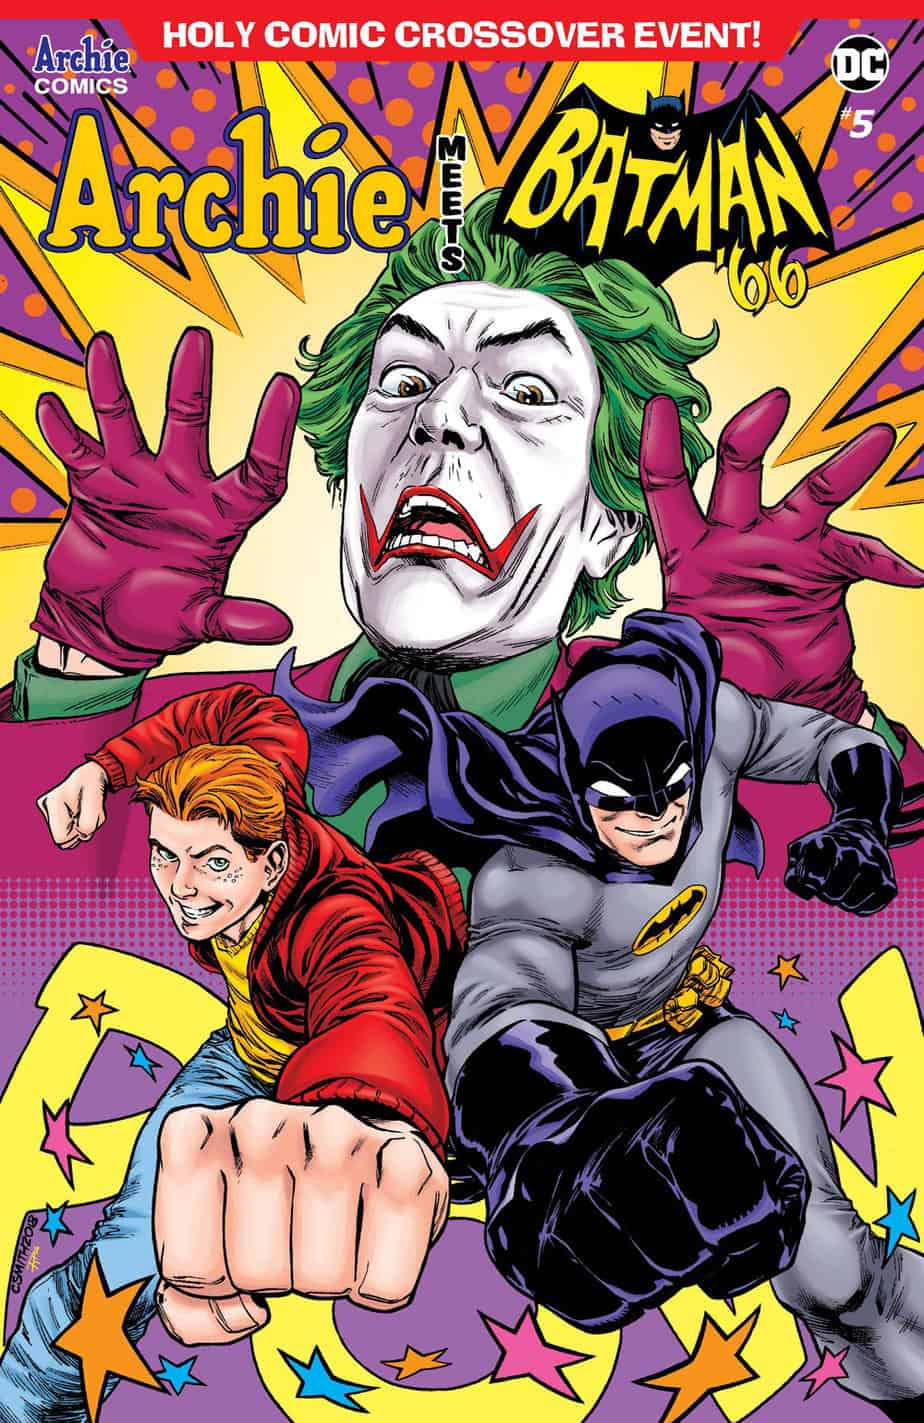 Archie Meets Batman '66 – Variant Cover by Cory Smith